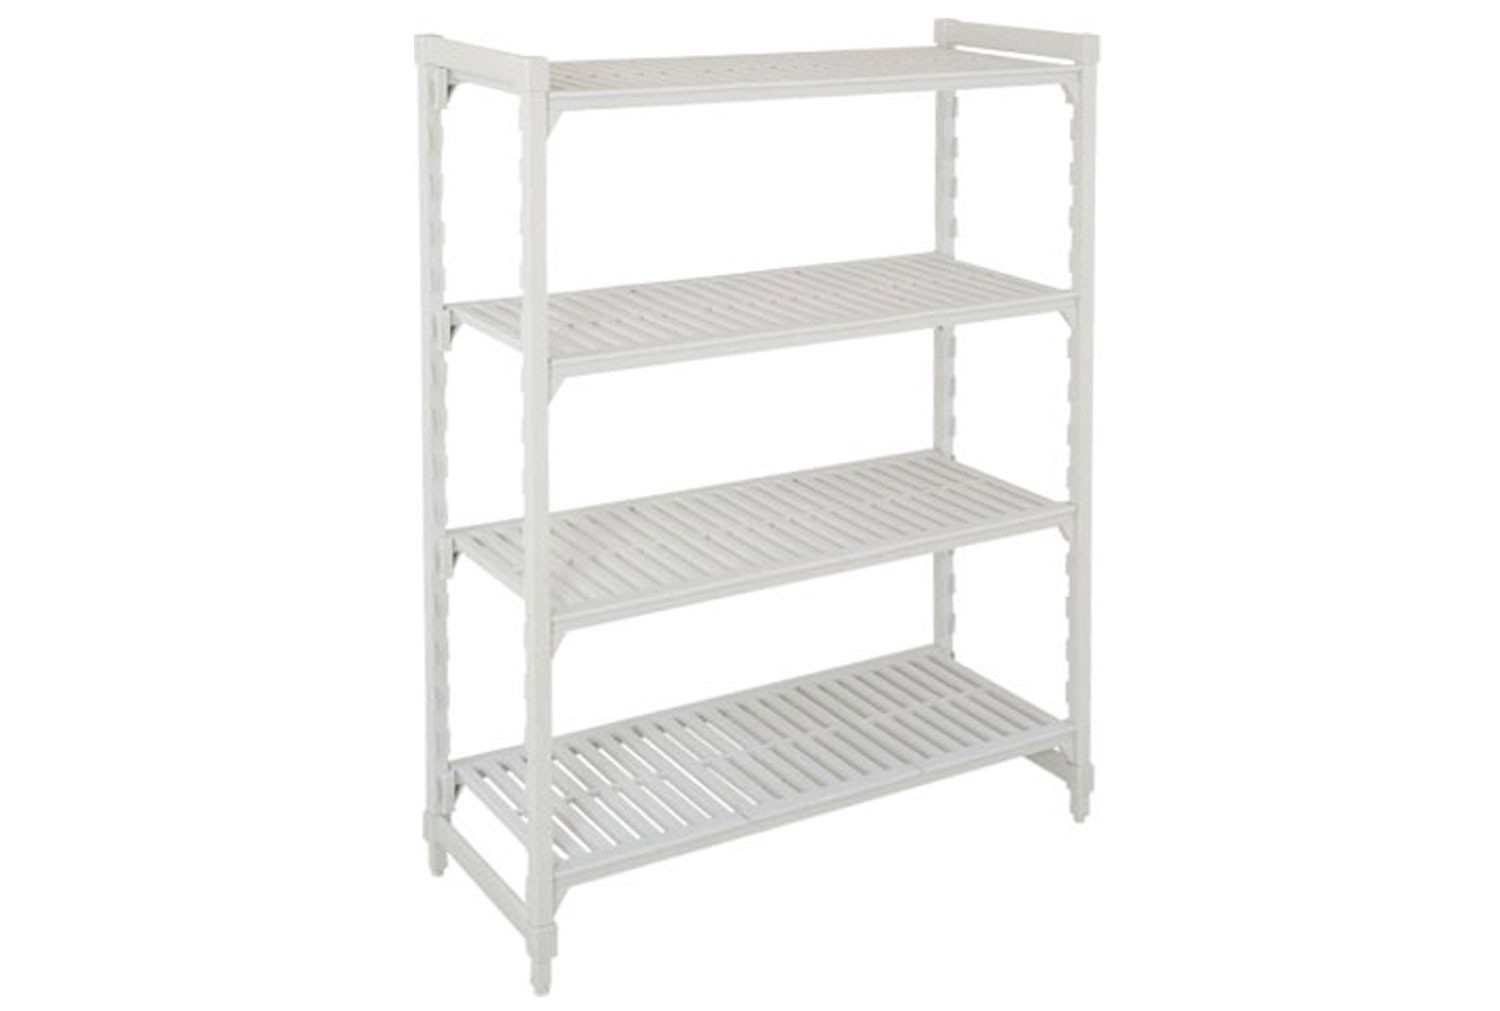 Cambro Catering Shelving With 4 Shelves Starter Bay